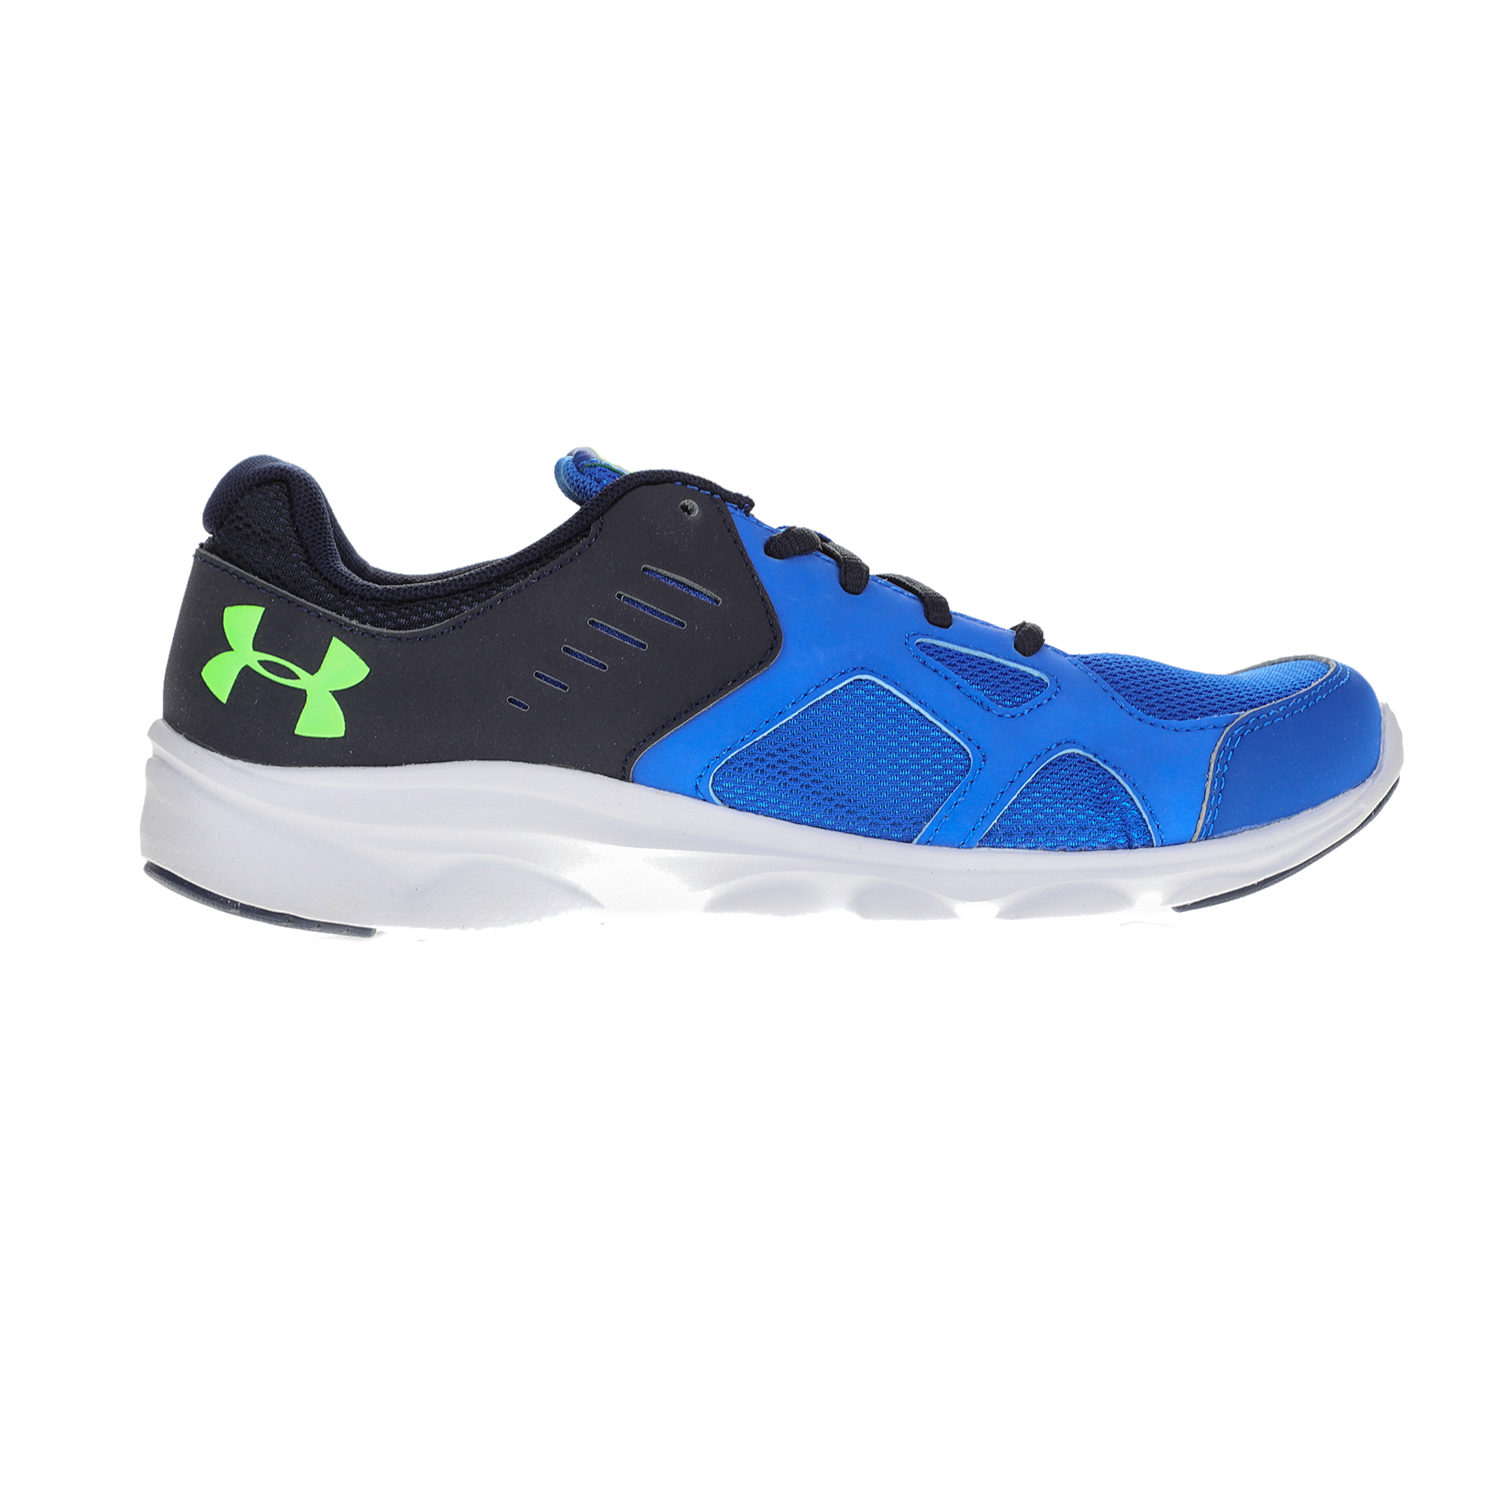 UNDER ARMOUR – Αγορίστικα αθλητικά παπούτσια UNDER ARMOUR BGS PACE RN μπλε 803be73dce3